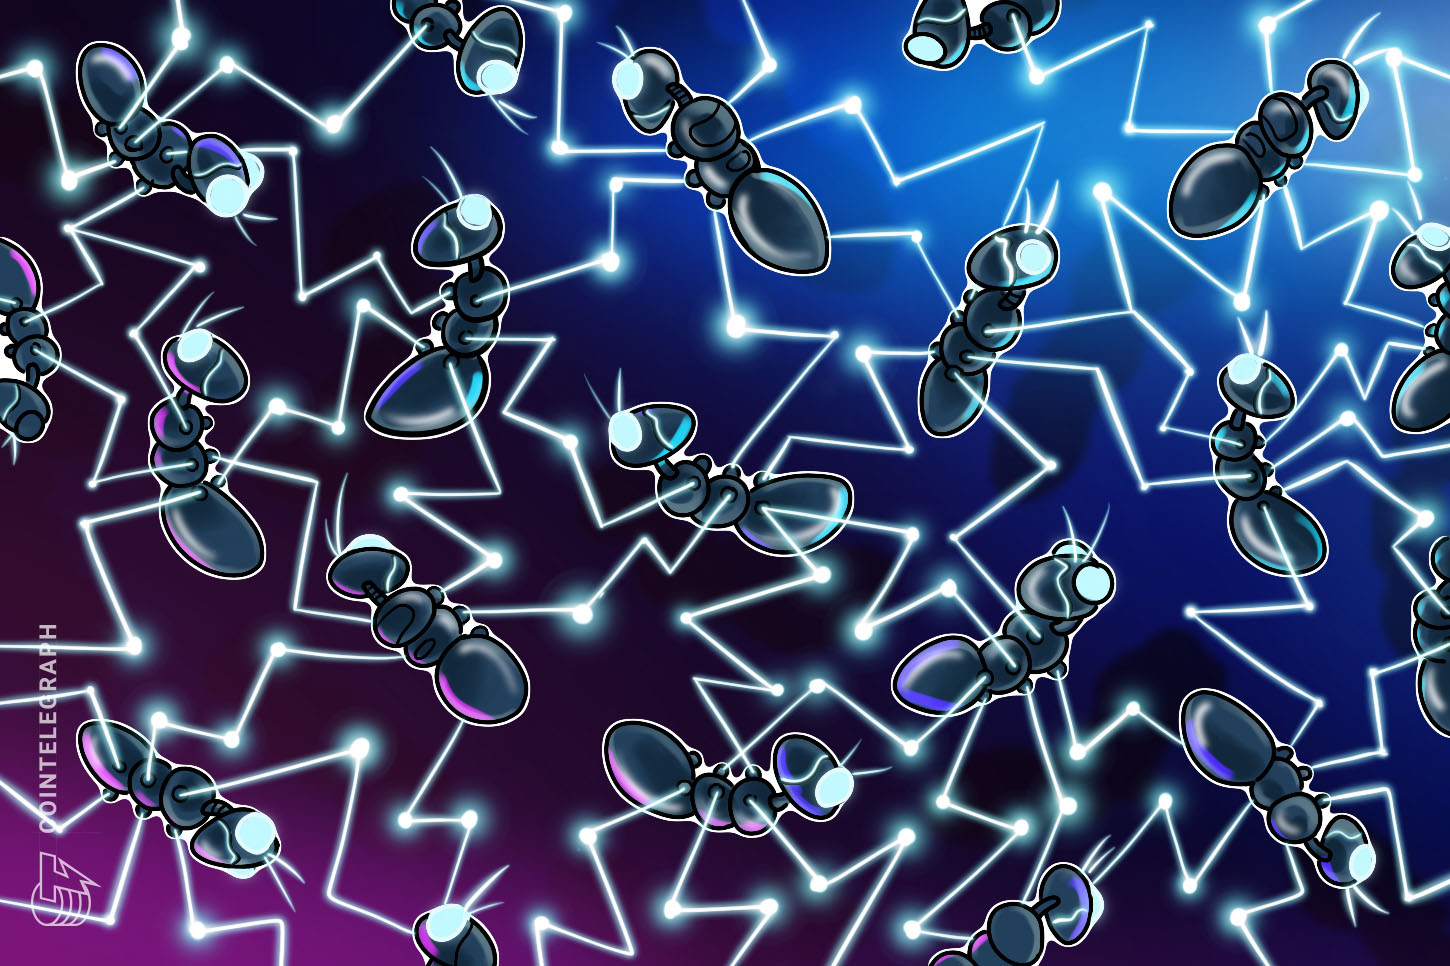 Dapper Labs' Flow blockchain takes major step towards mainnet